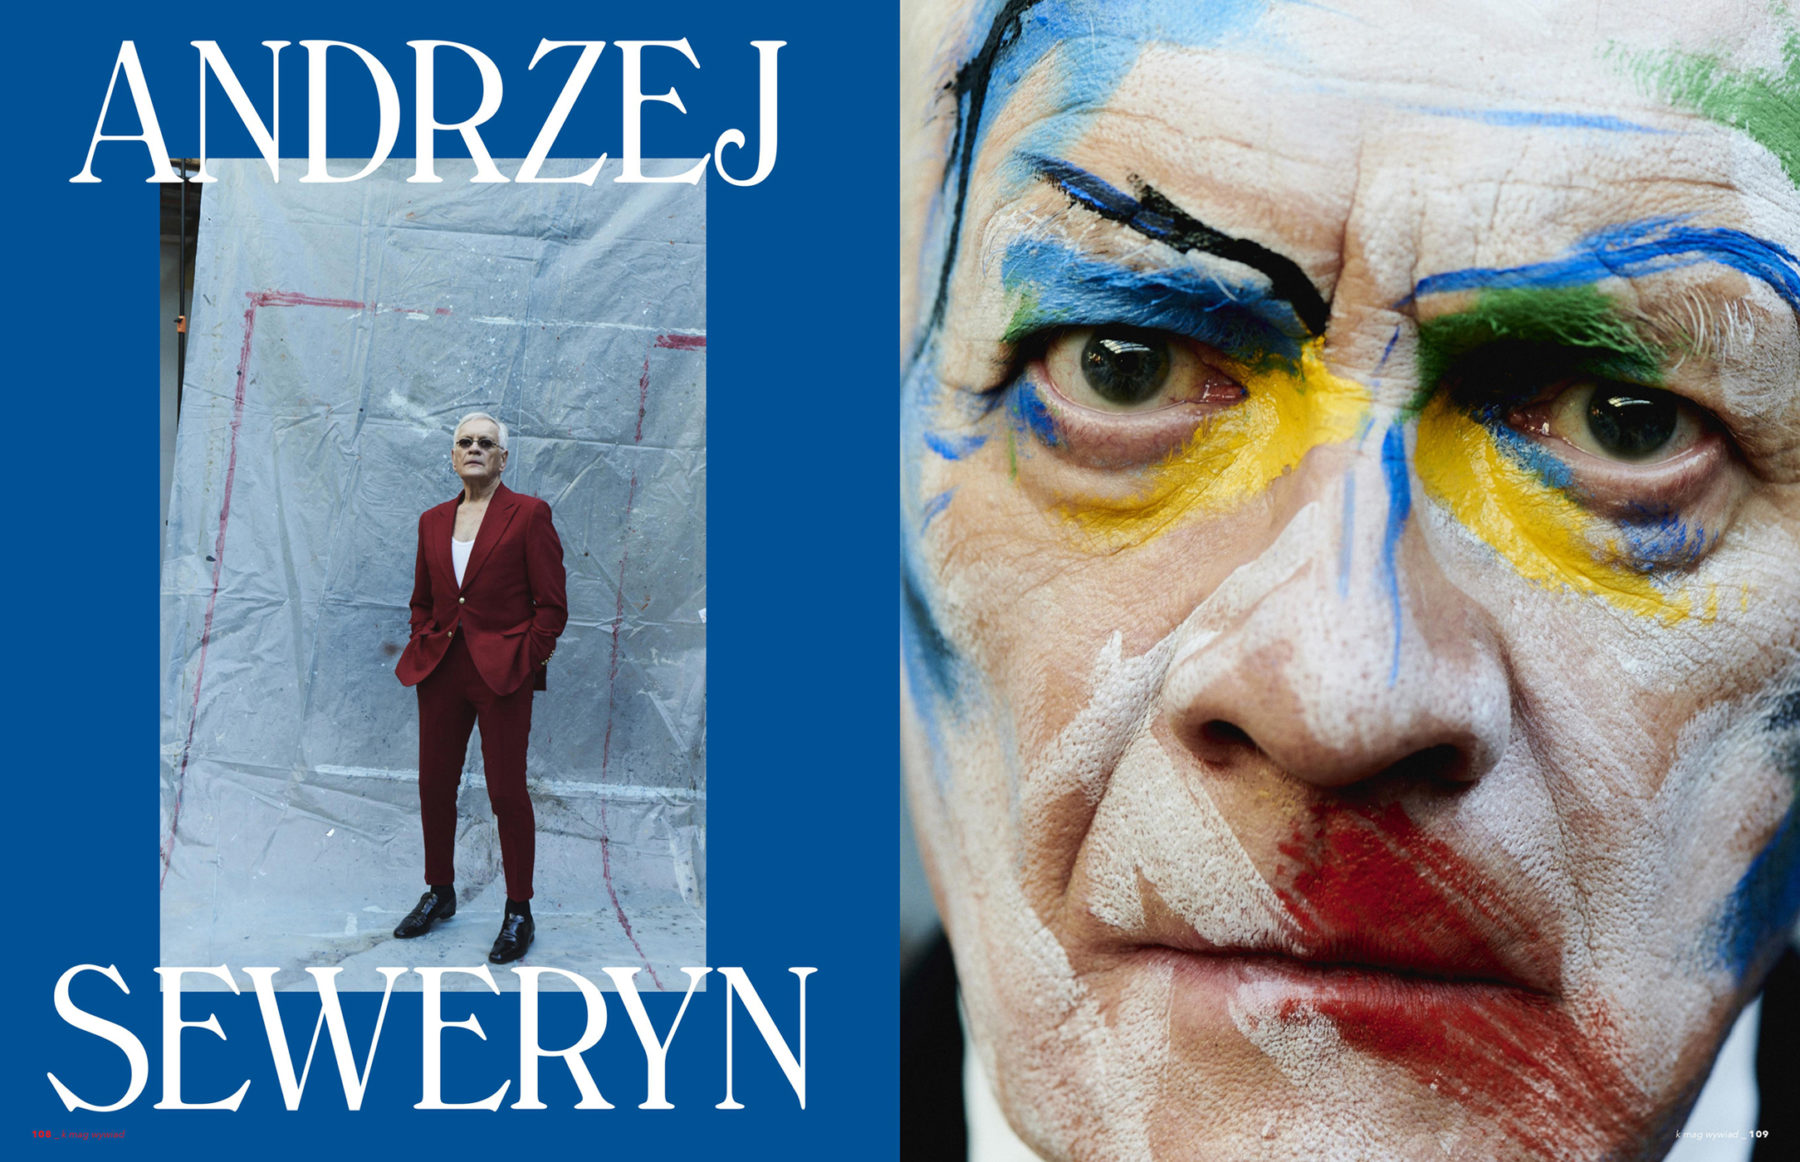 Portrait editorial of Andrzej Seweryn by makeup artist Aga Brudny